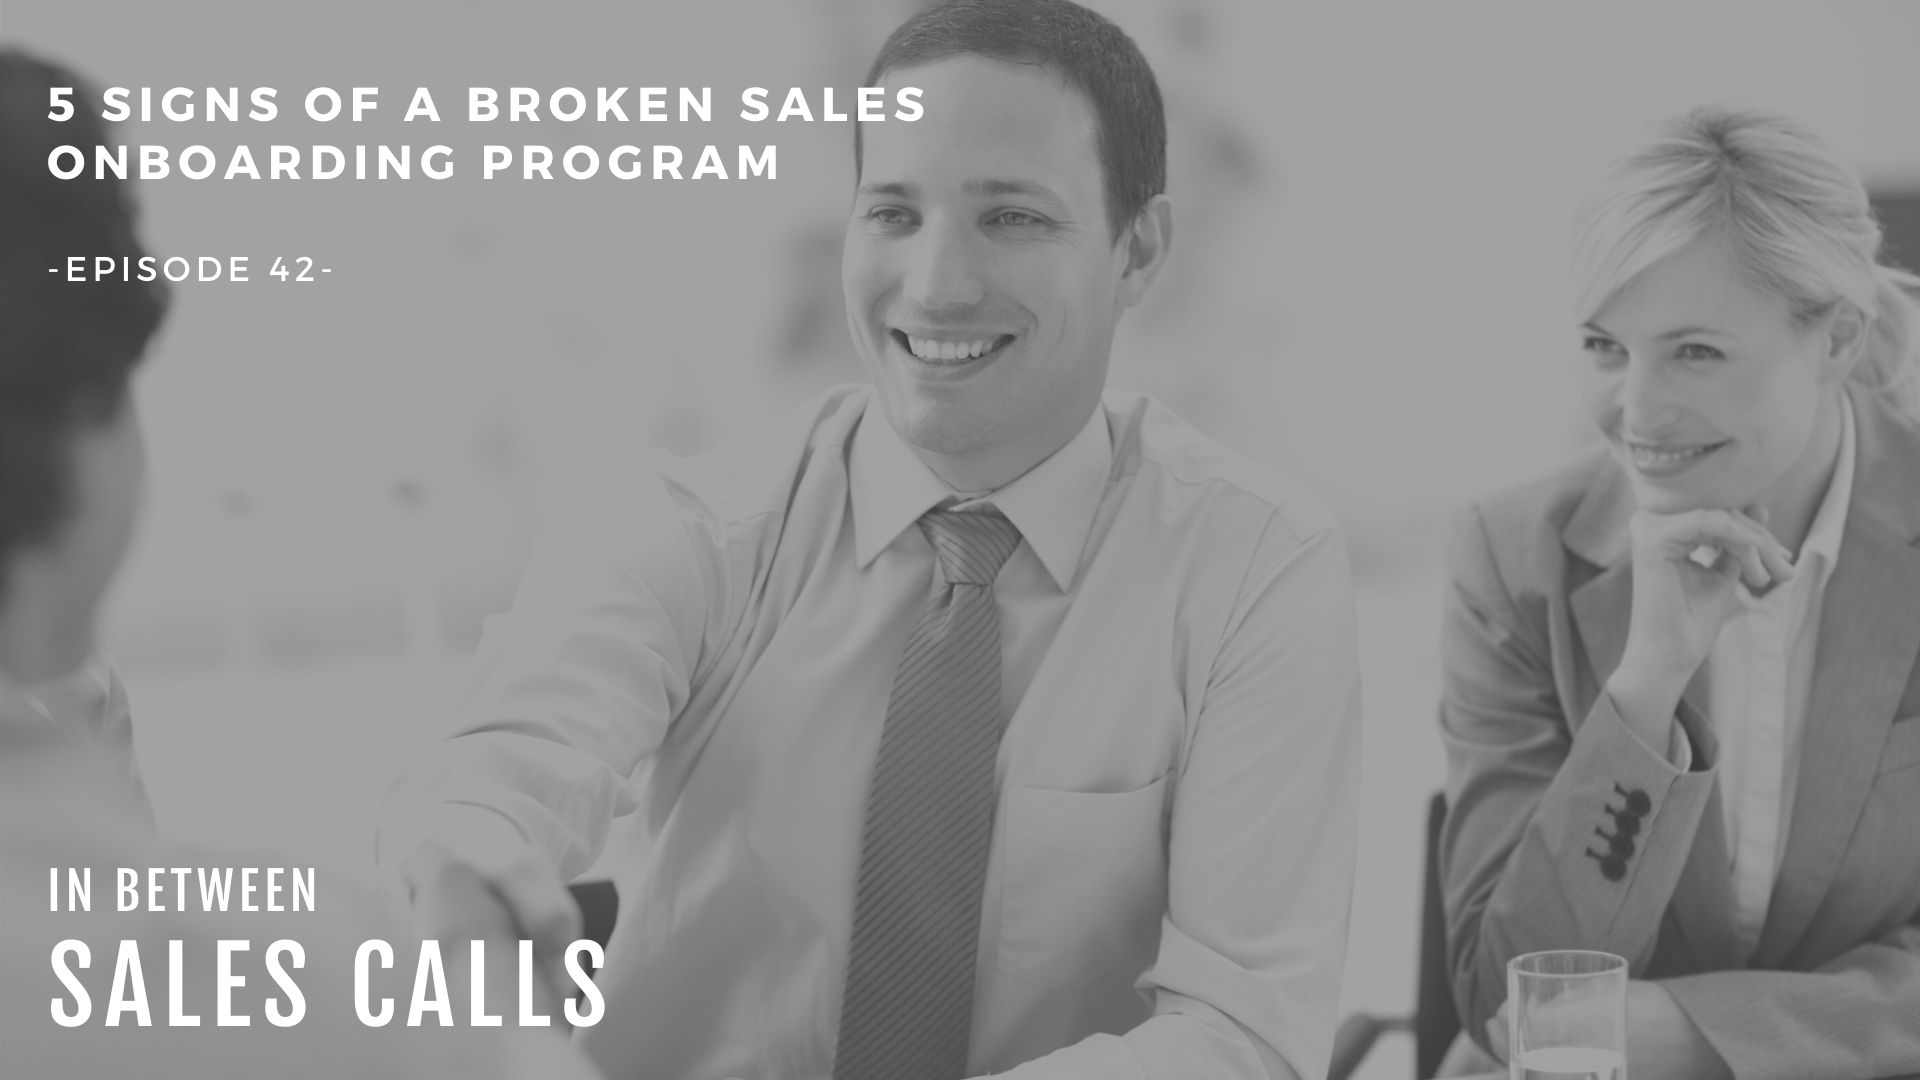 5-signs-of-broken-on-boarding-modern-sales-training-in-between-sales-calls-podcast